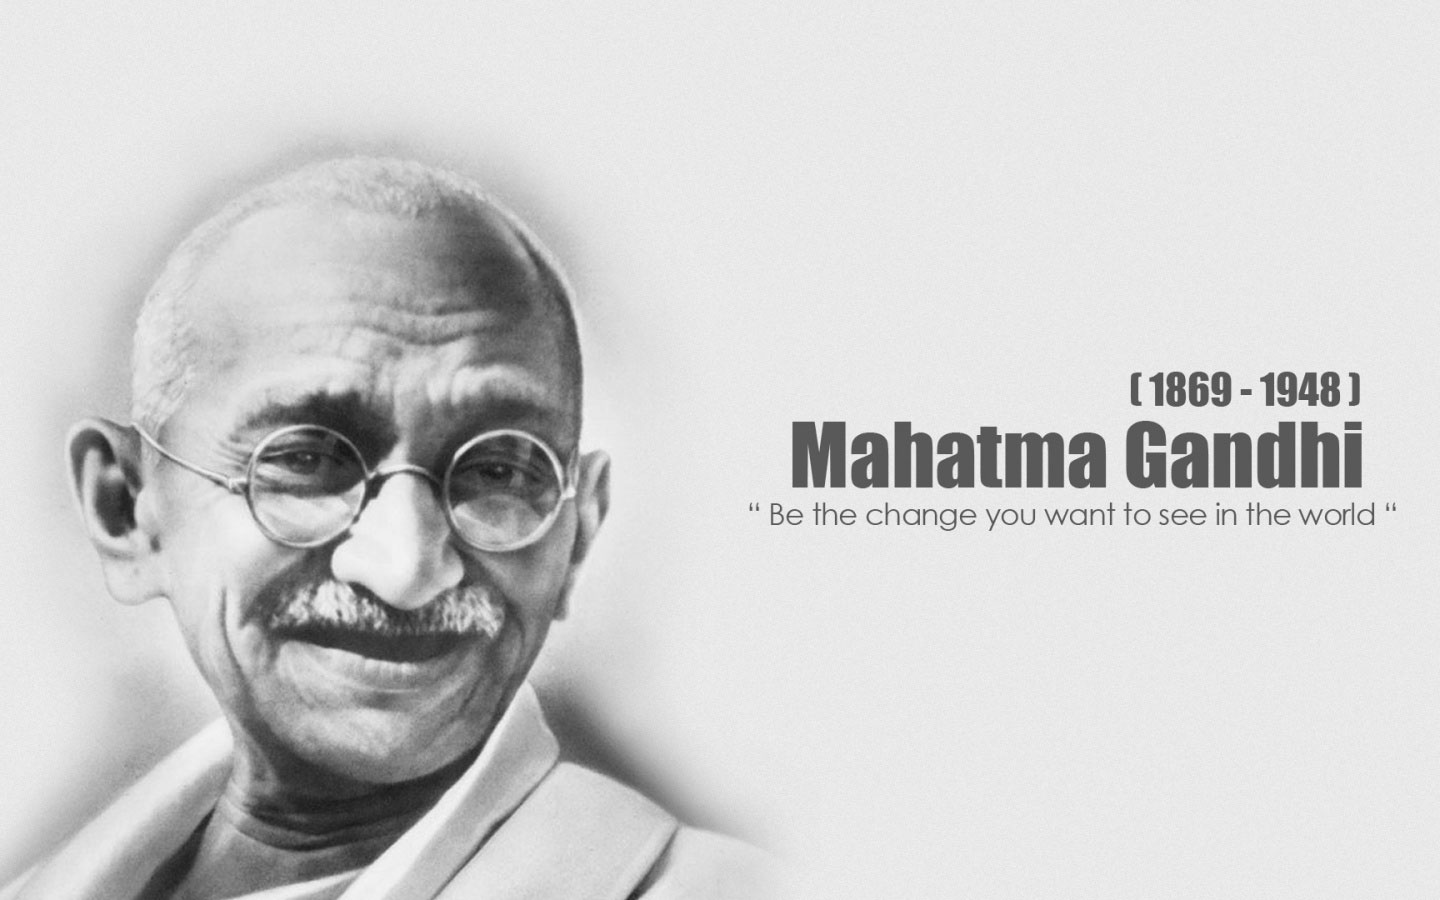 famous gandhi jayanti inspirational quotes gandhi jayanti speech  short quotes on gandhi jayanti